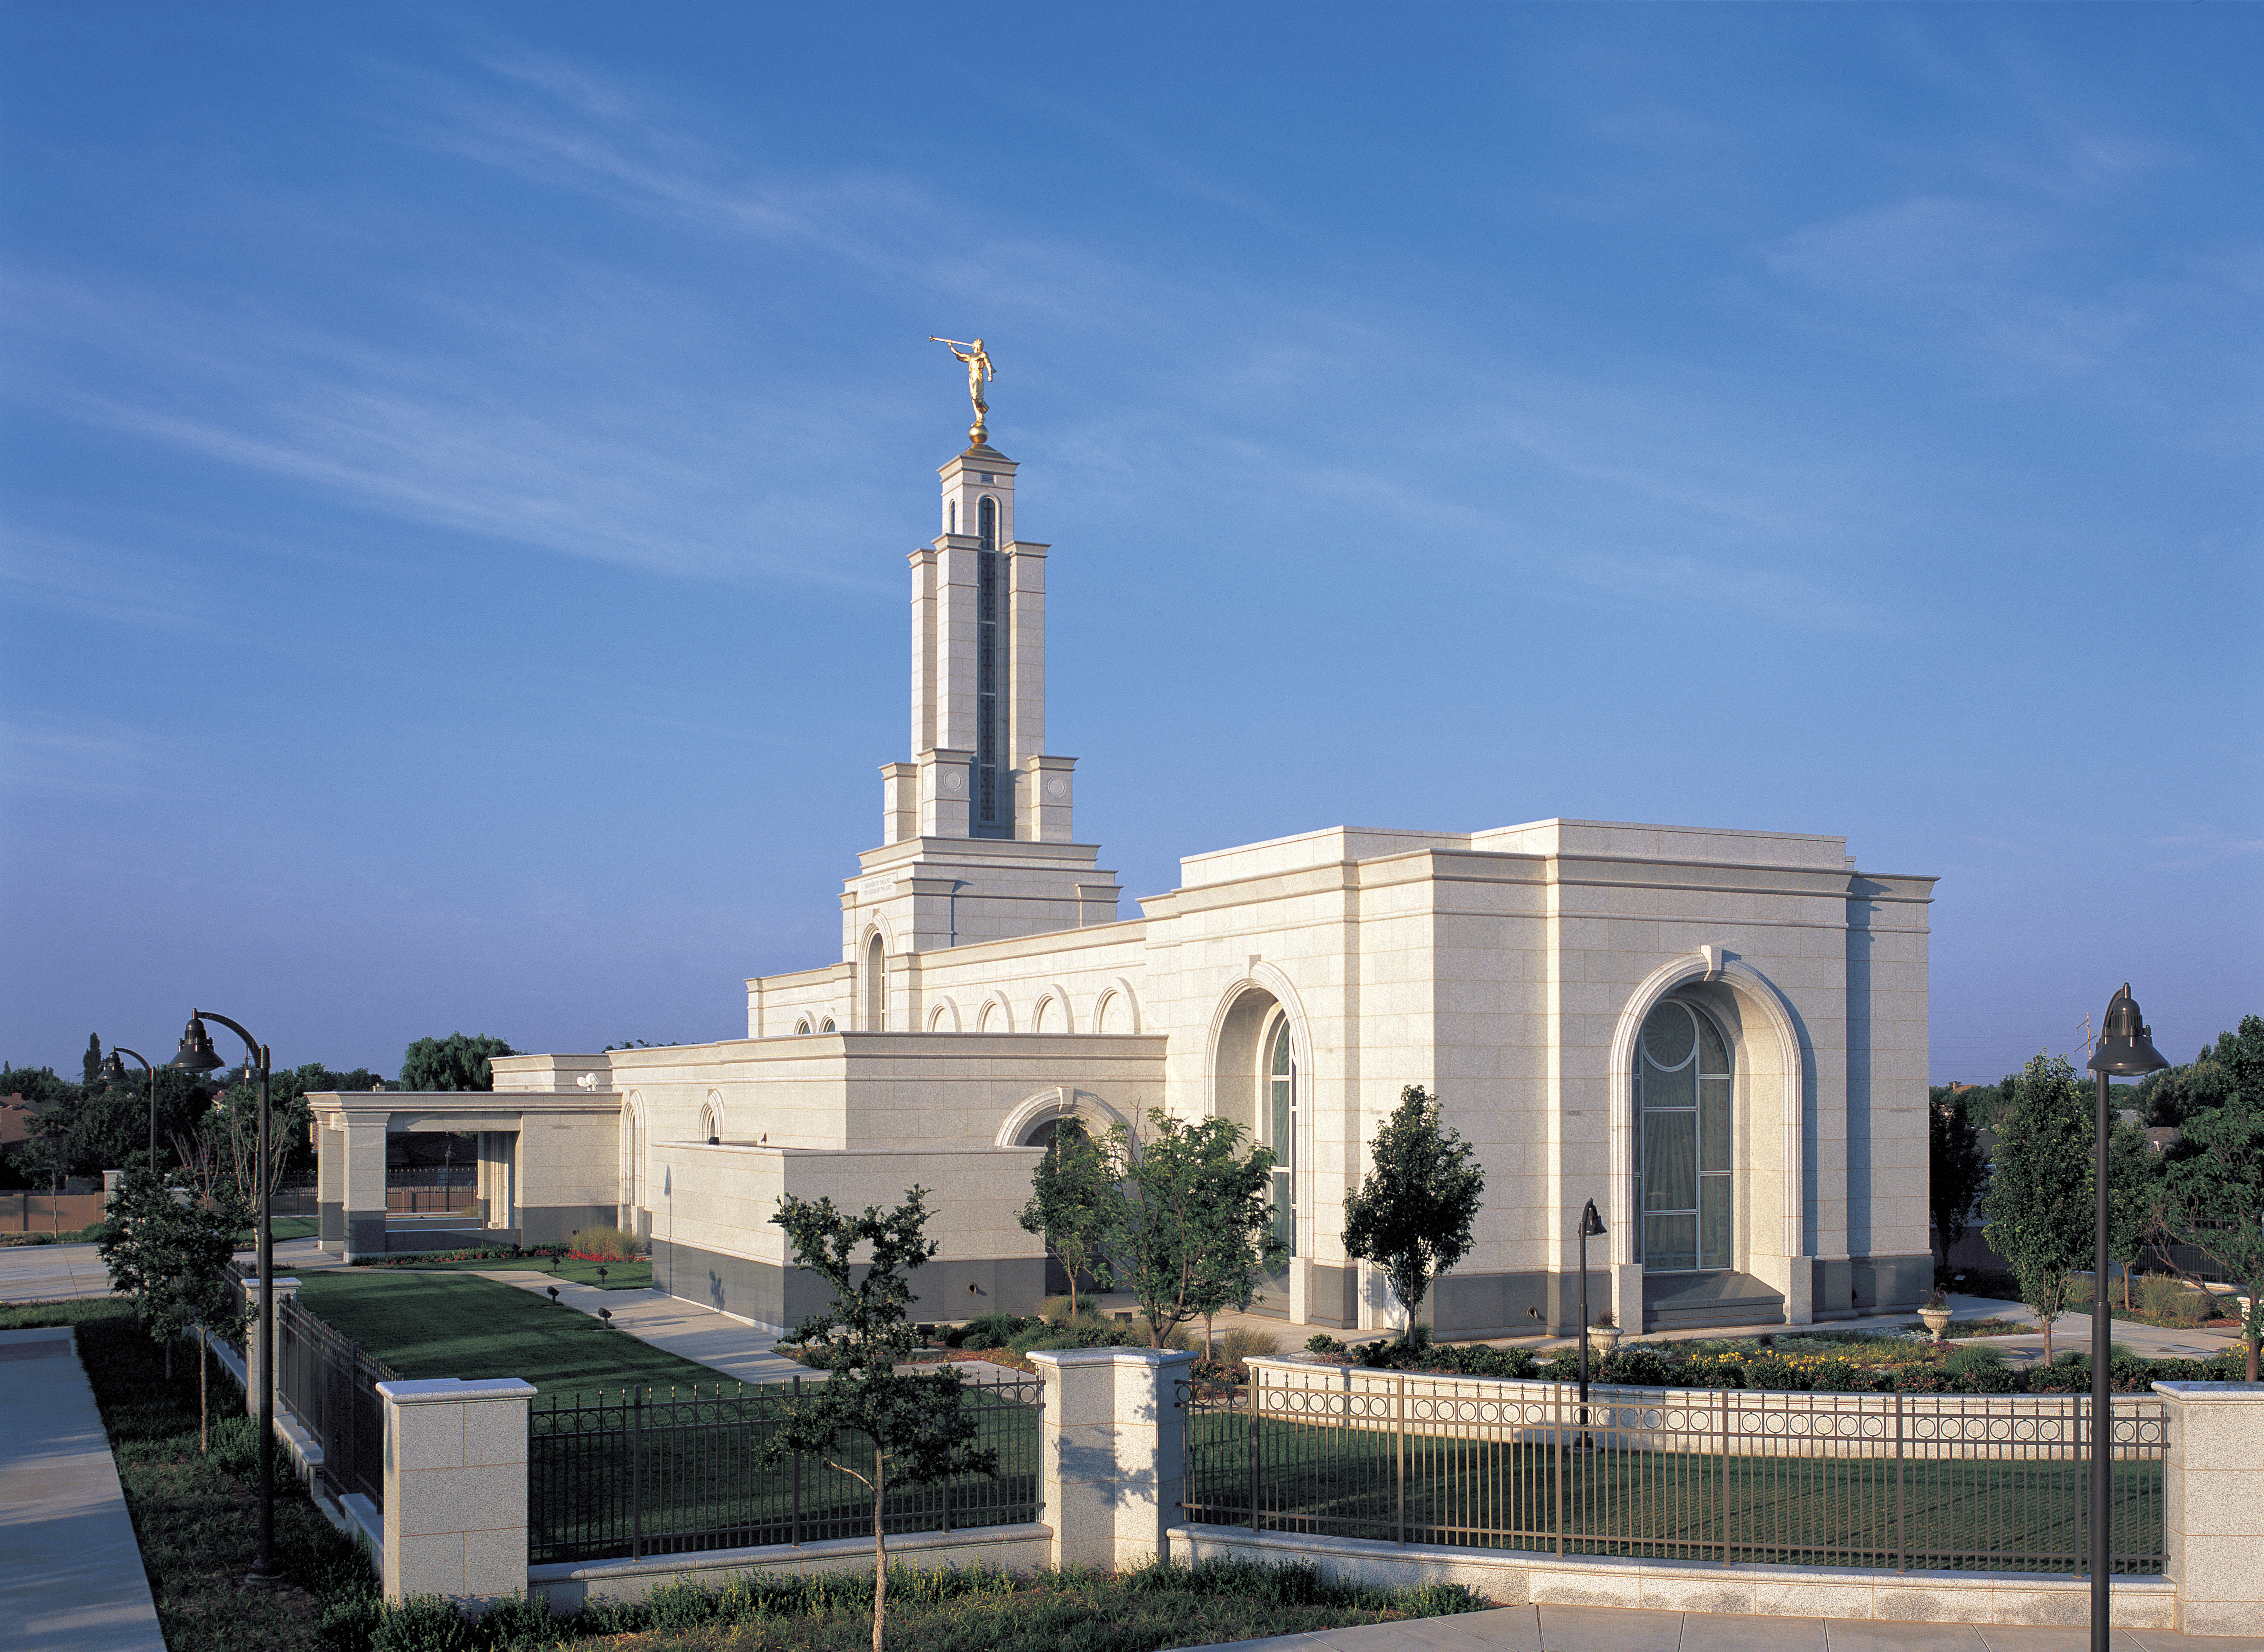 One side of the Lubbock Texas Temple on a sunny day.